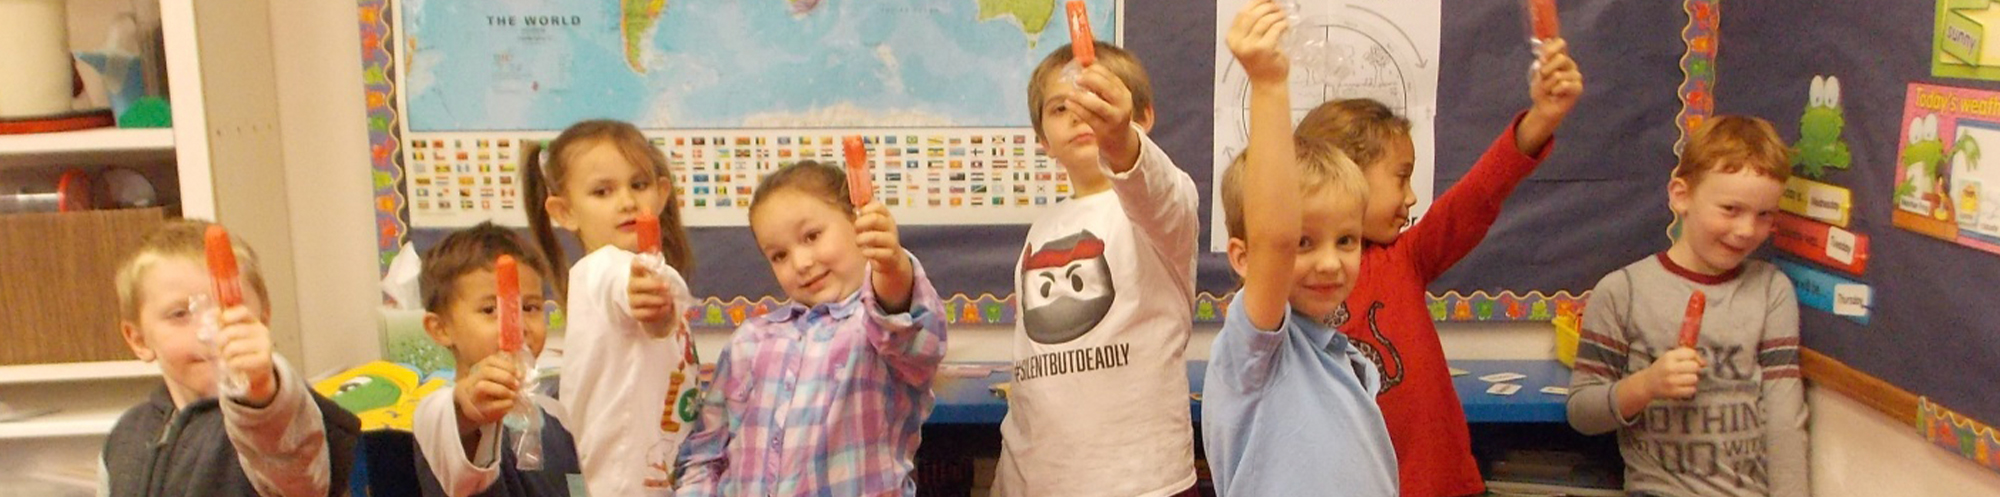 Young students holding up popsicles